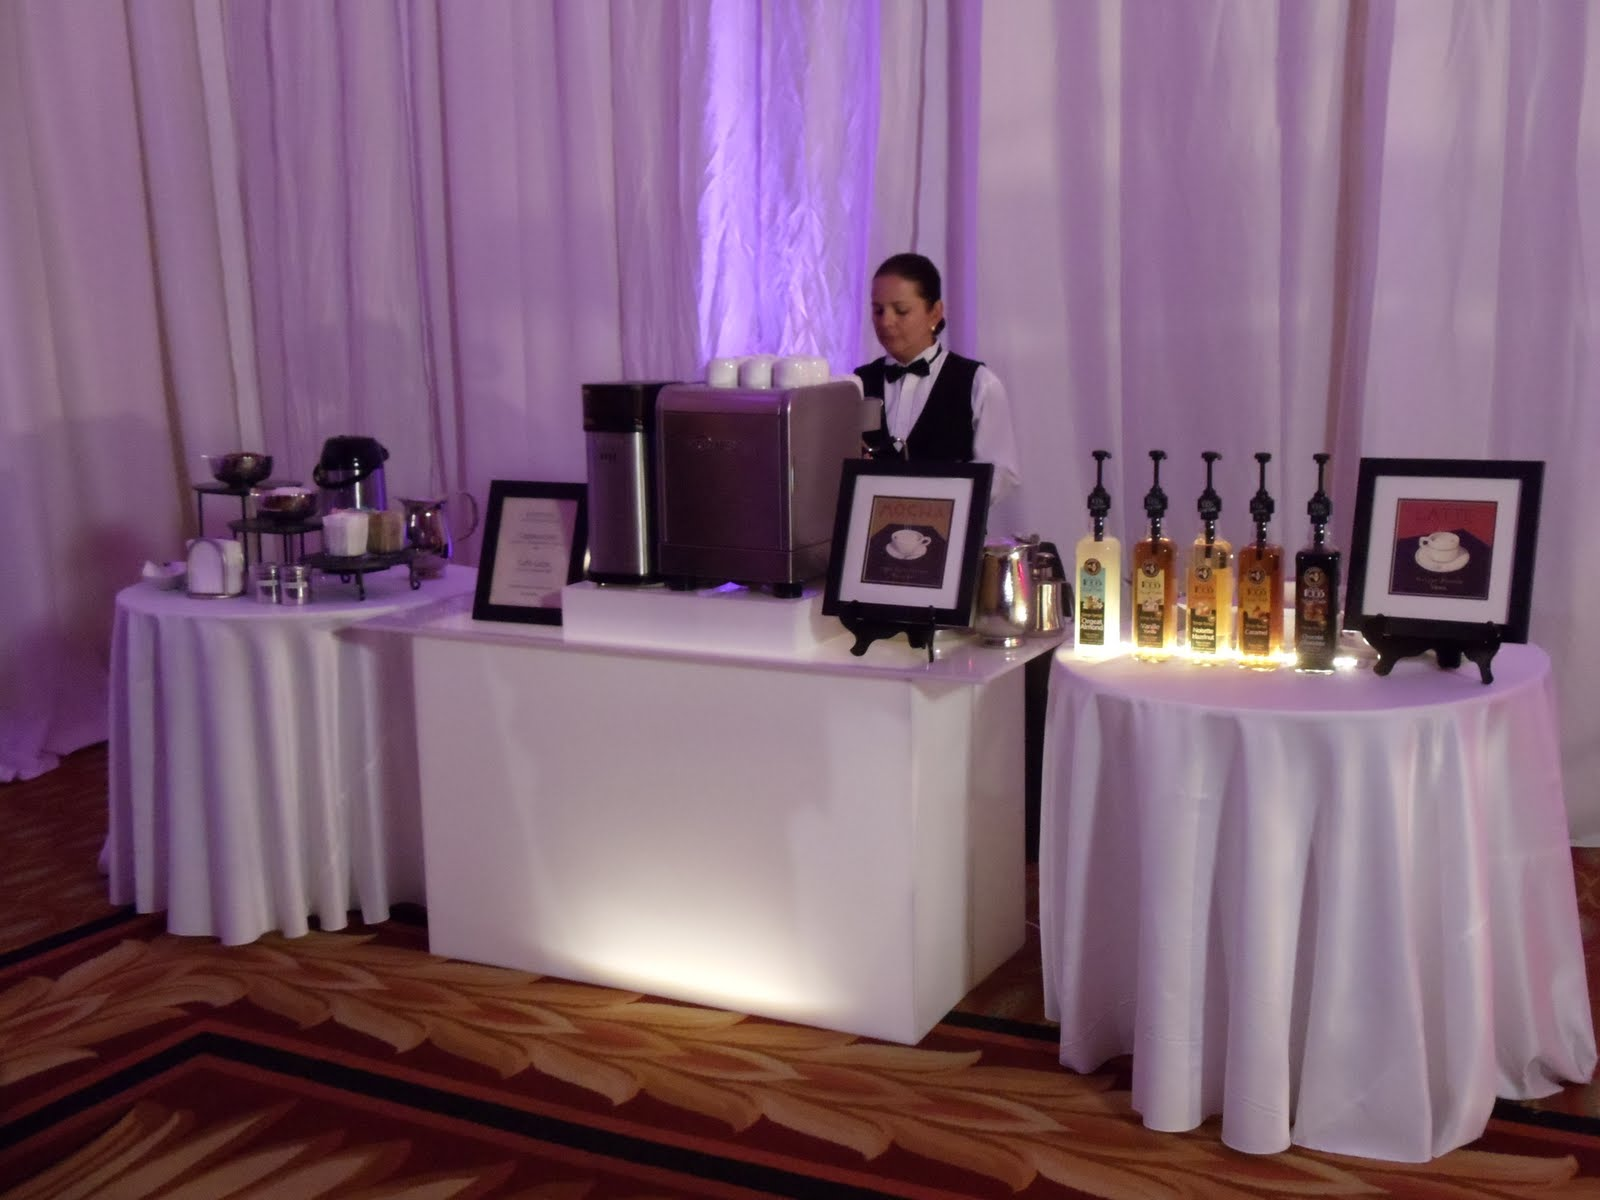 The wedding beverage service sf bartender for hire for Coffee bar for wedding